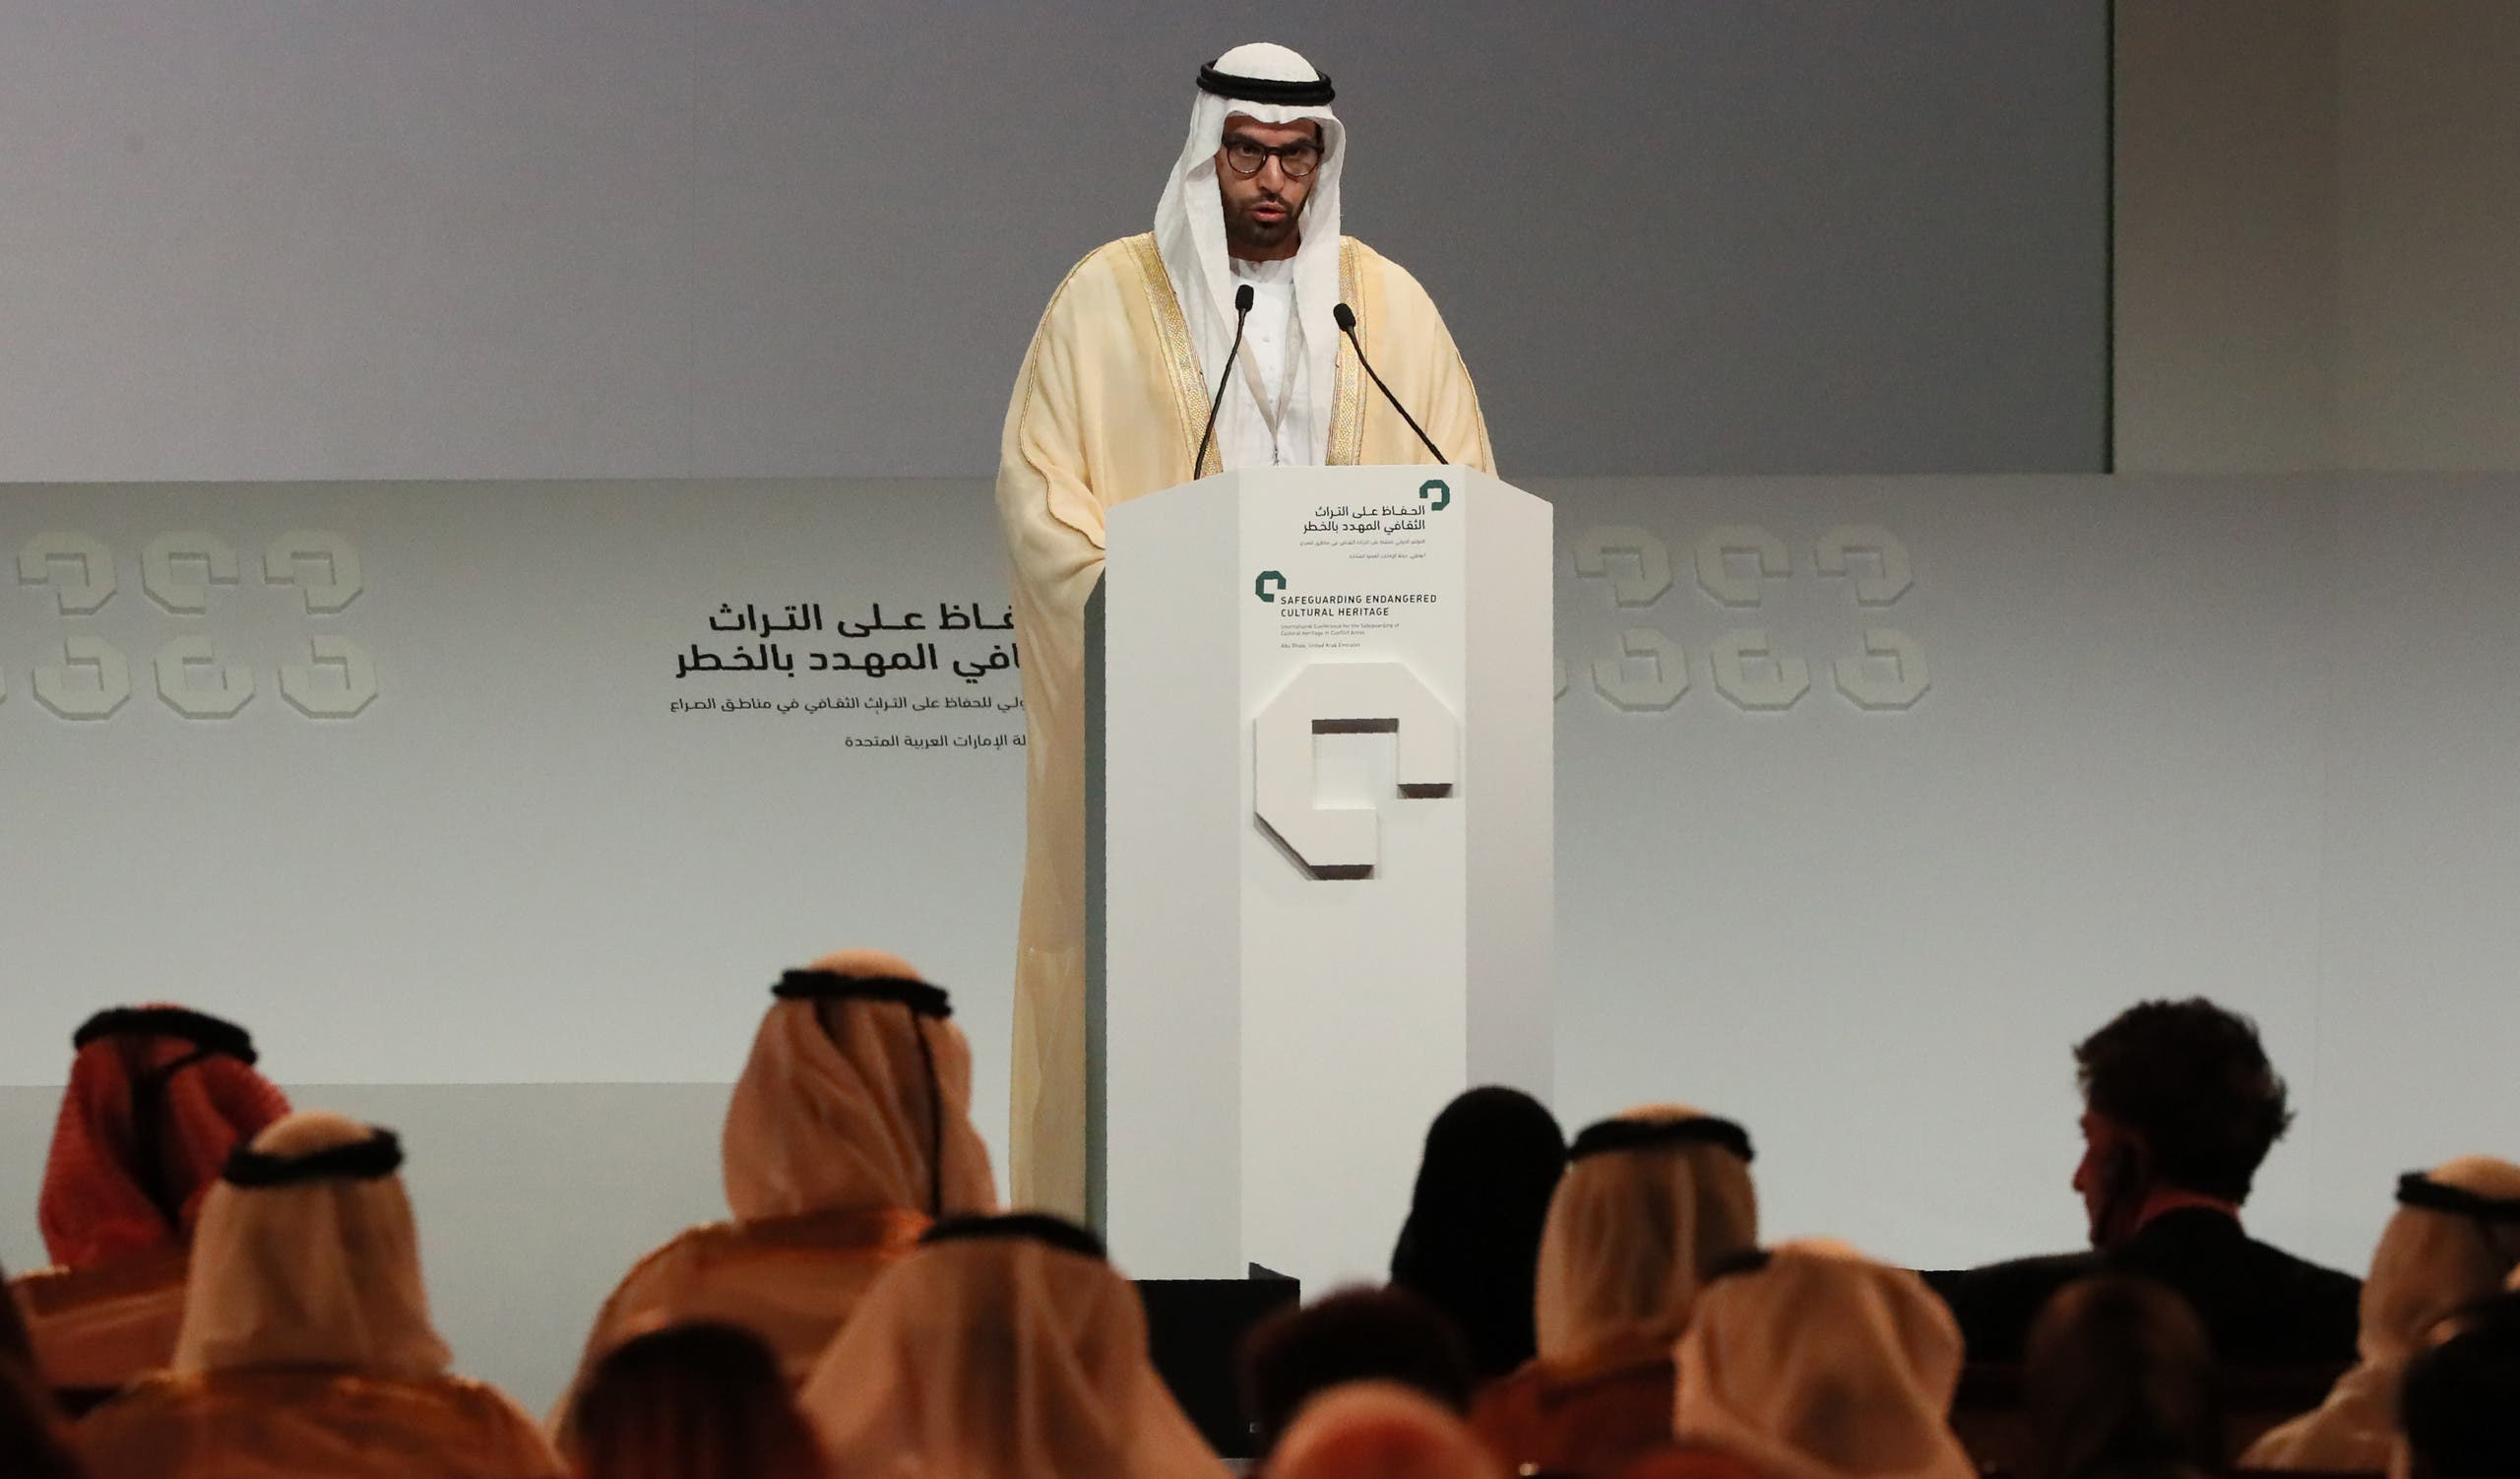 UAE's Chairman of Abu Dhabi Tourism and Culture Authority, Mohamad Khalifa al-Mubarak, speaks during the opening ceremony of a conference gathering officials and experts from around the world gather to discuss forming a global alliance to protect endangered heritage sites on December 2, 2016 in Abu Dhabi.  afp